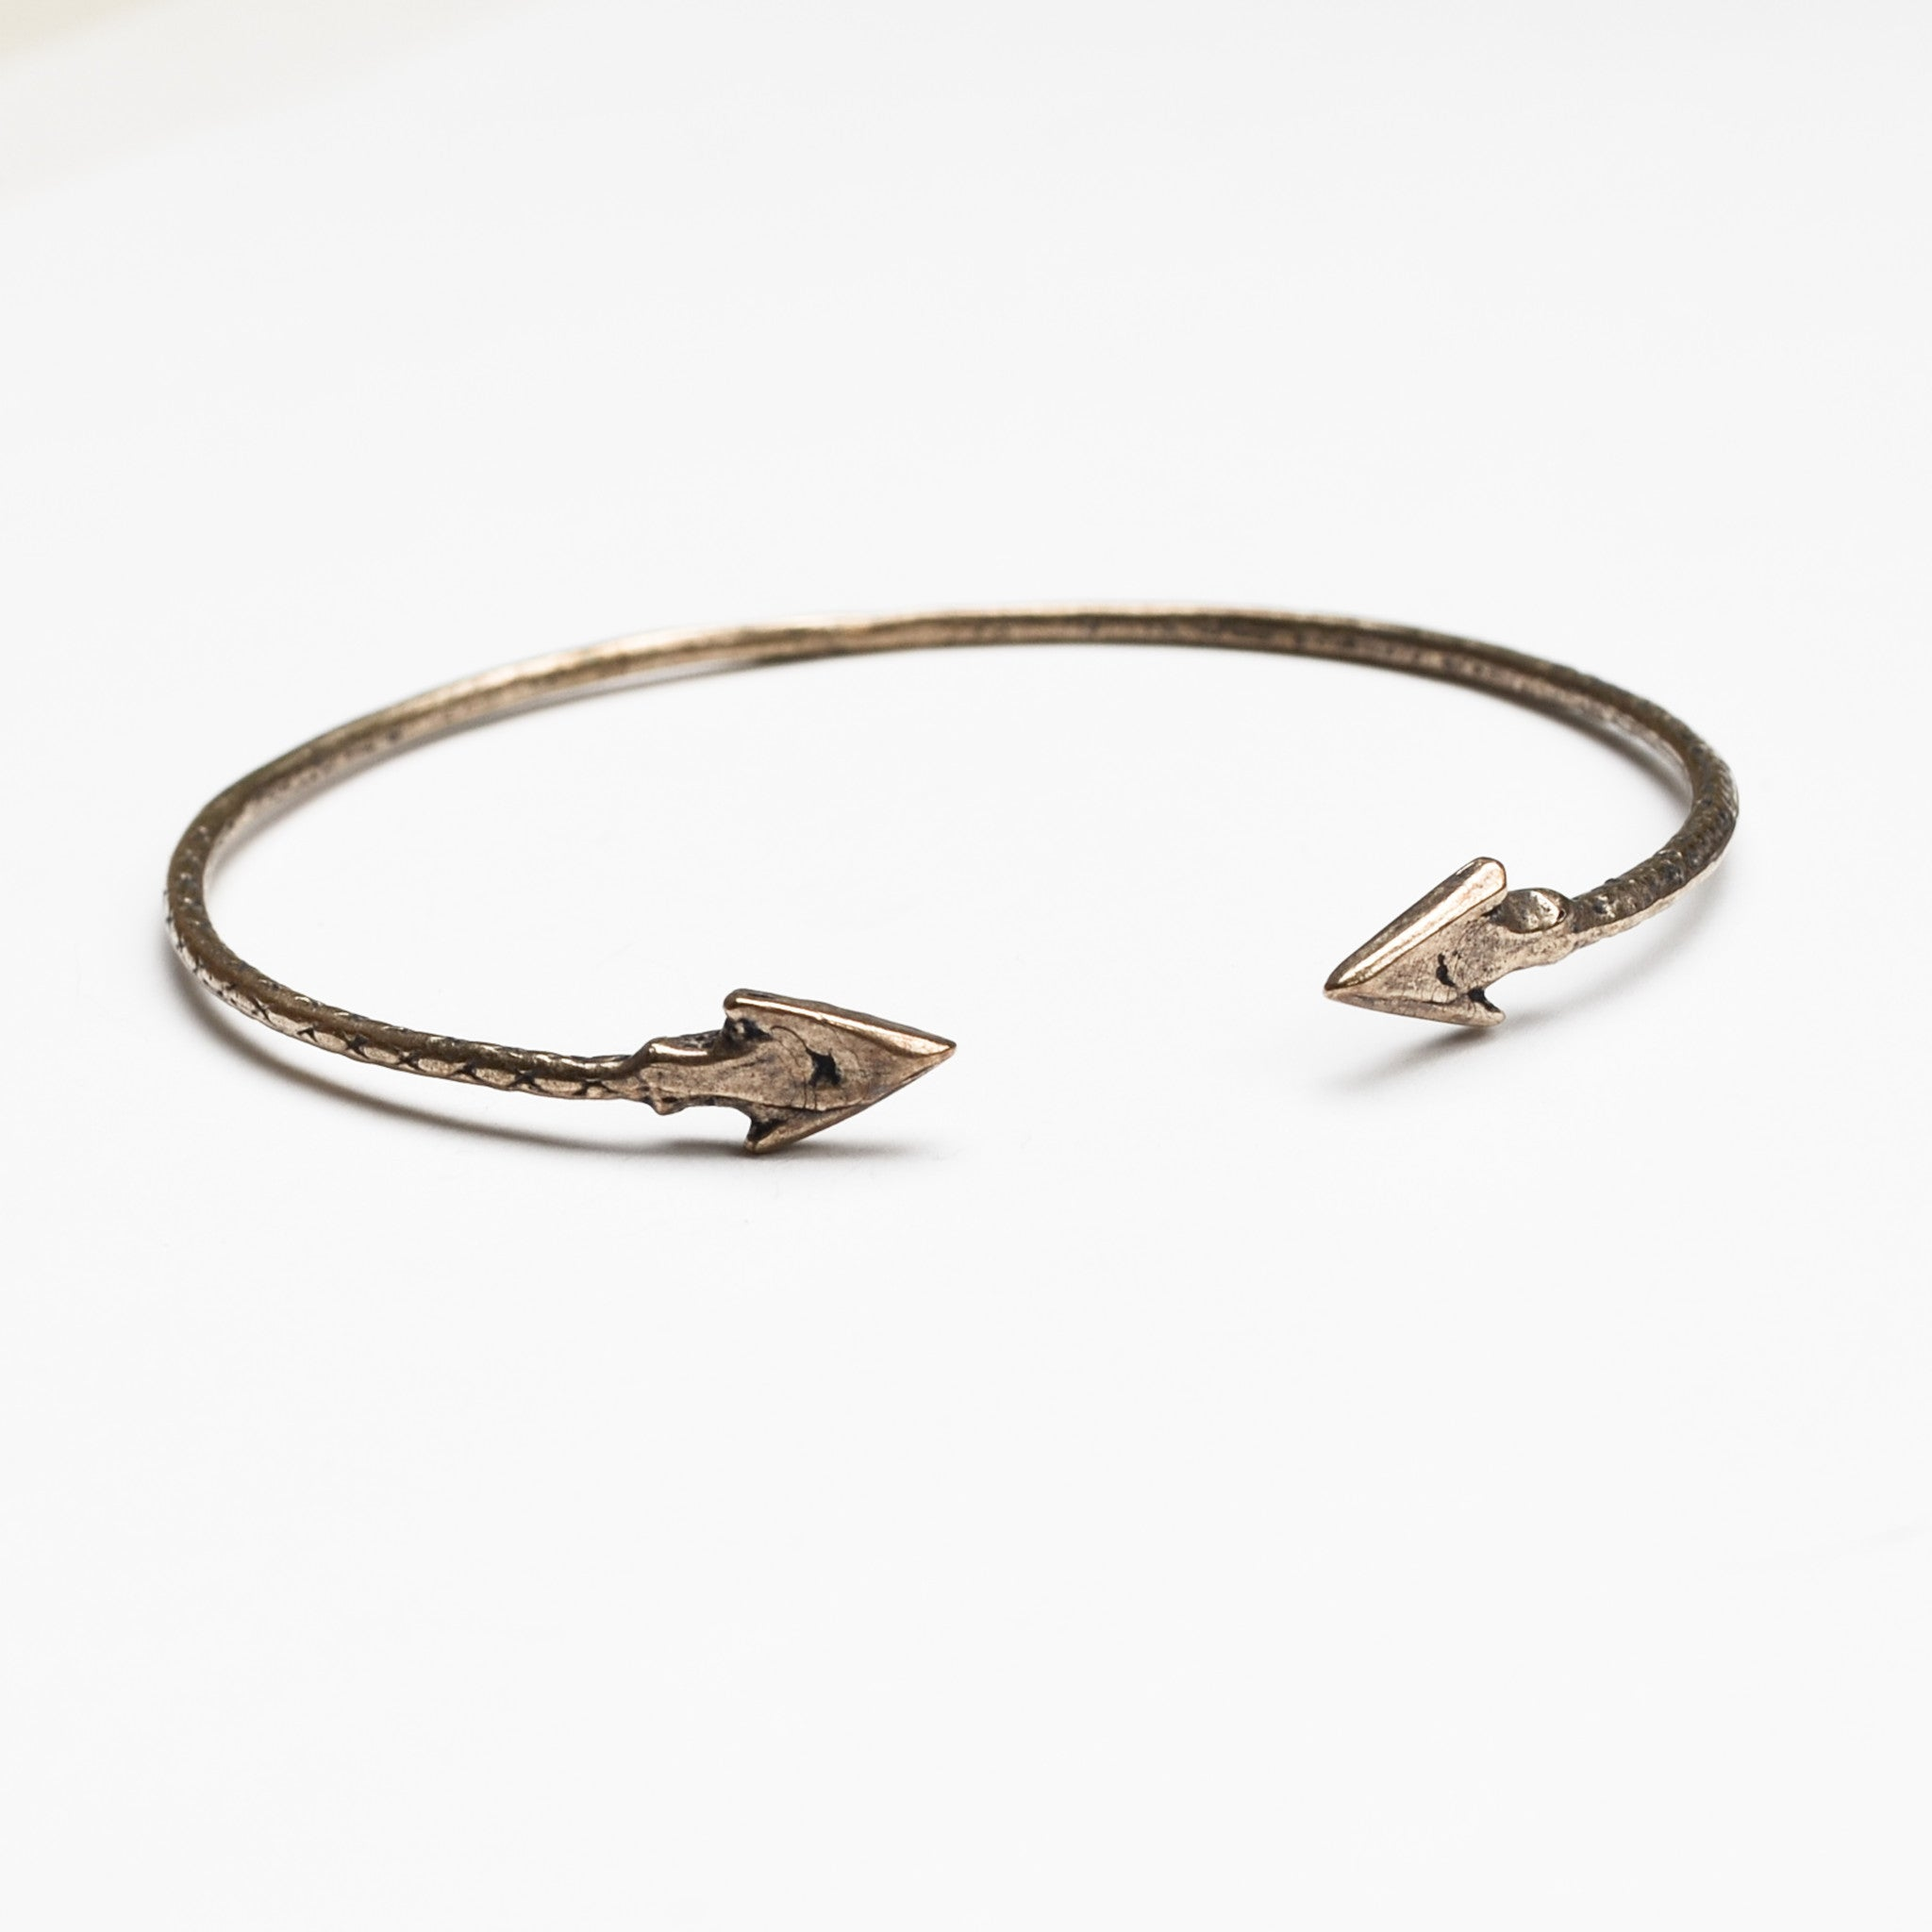 Double Arrow Cuff Bracelet - Meltdown Studio Jewelry